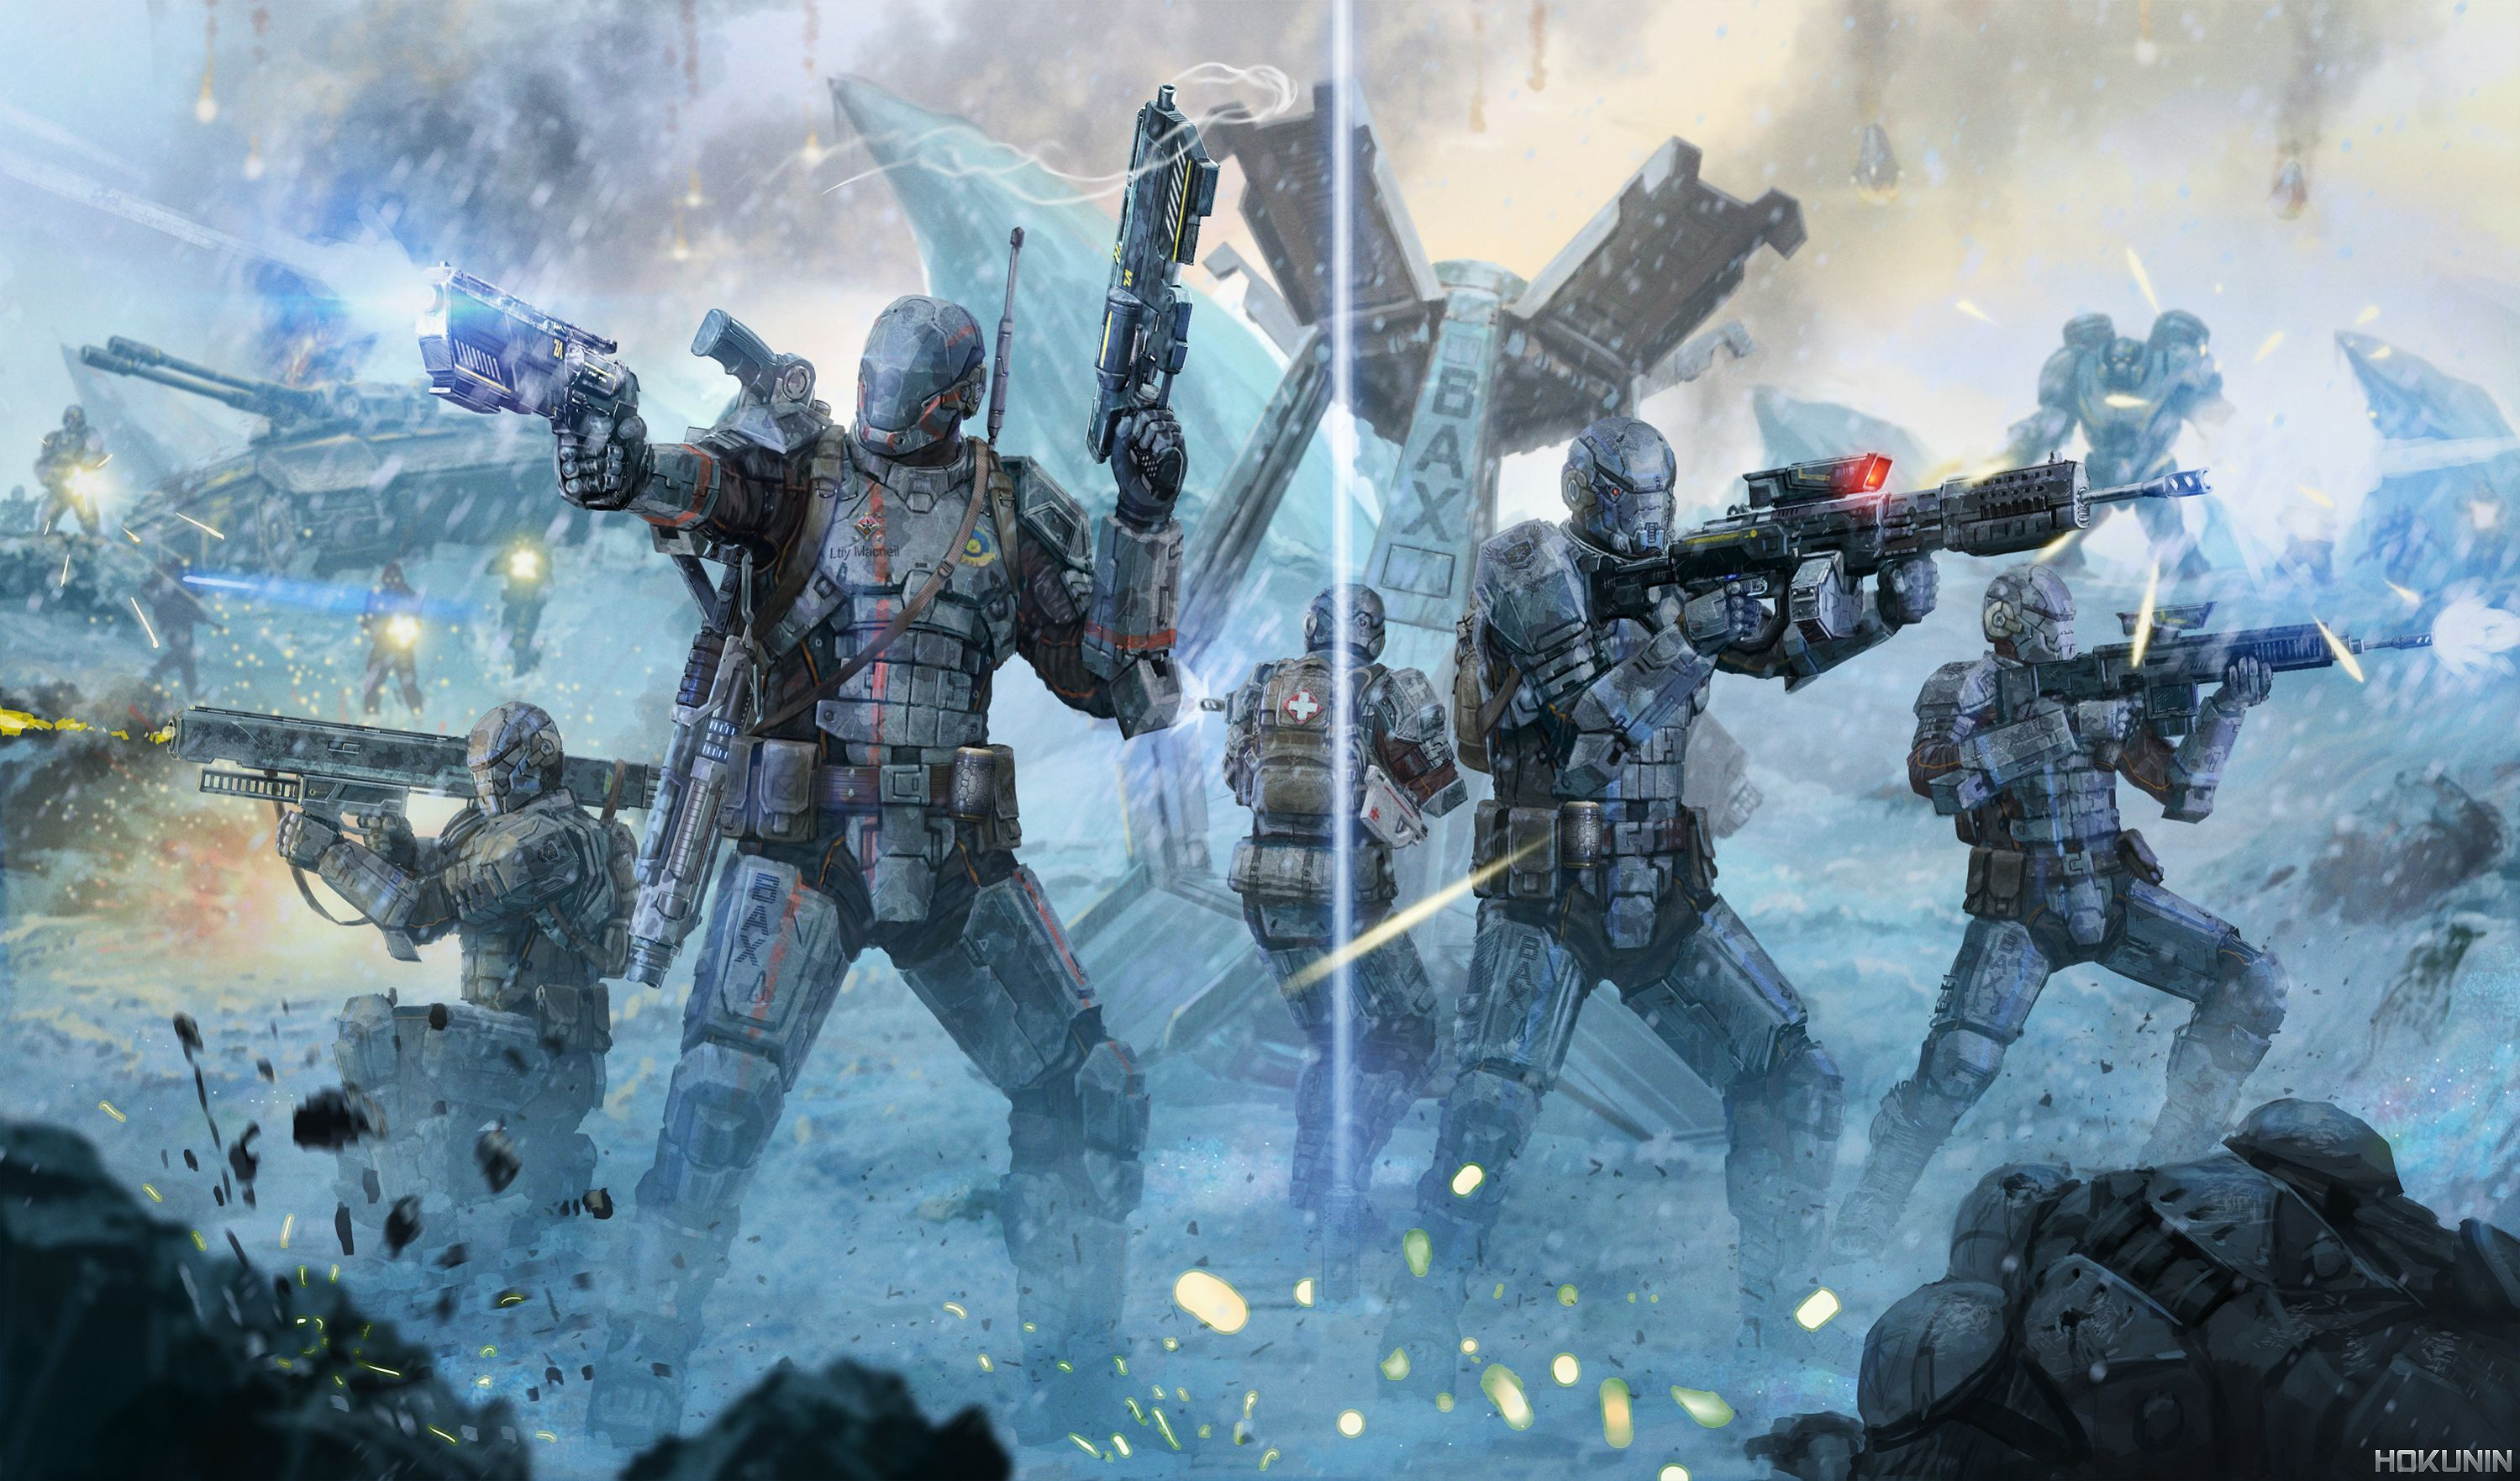 image result for planetside 2 art south pole empire inspiration in